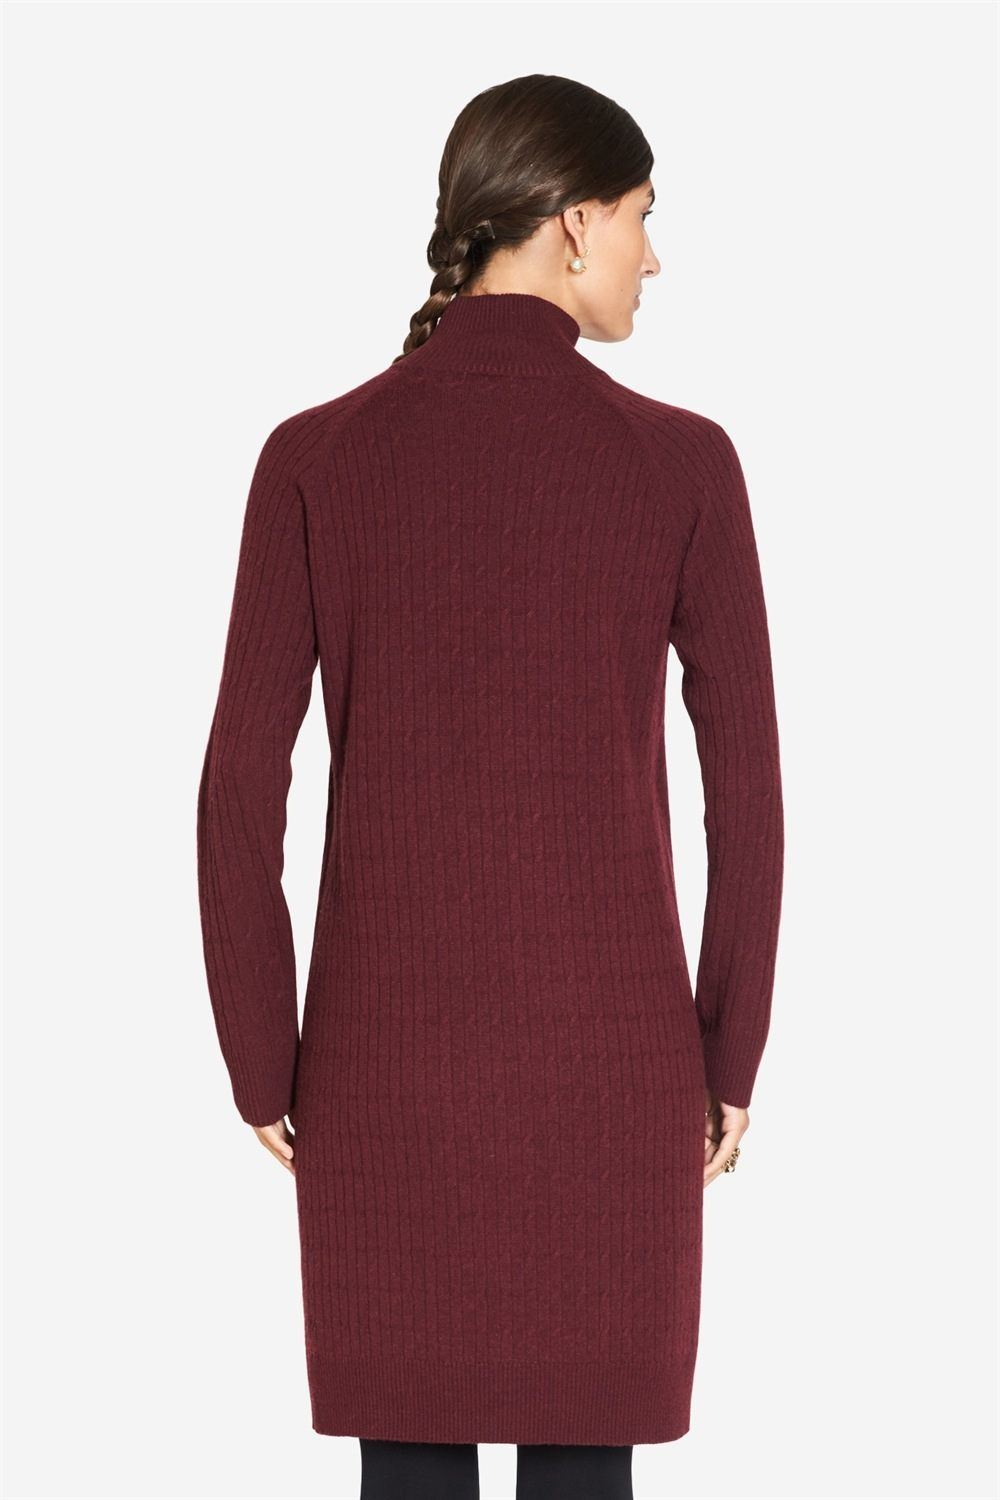 Burgundy nursing dress in wool and cable knit, back view